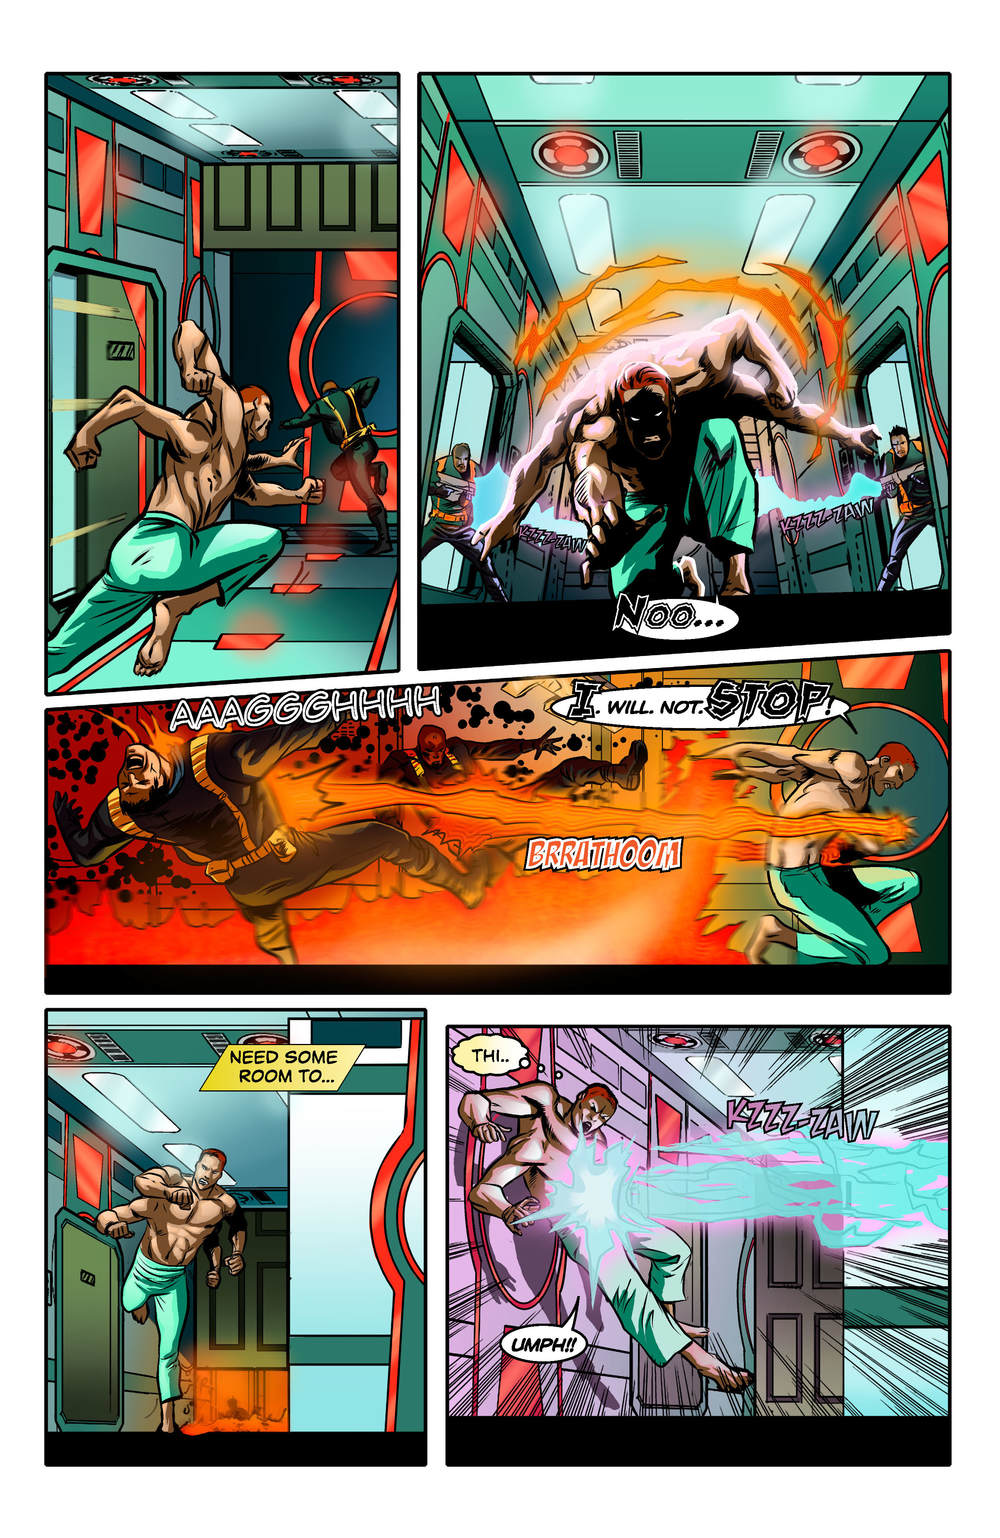 TT_Issue02_Digital_Page_16.jpg